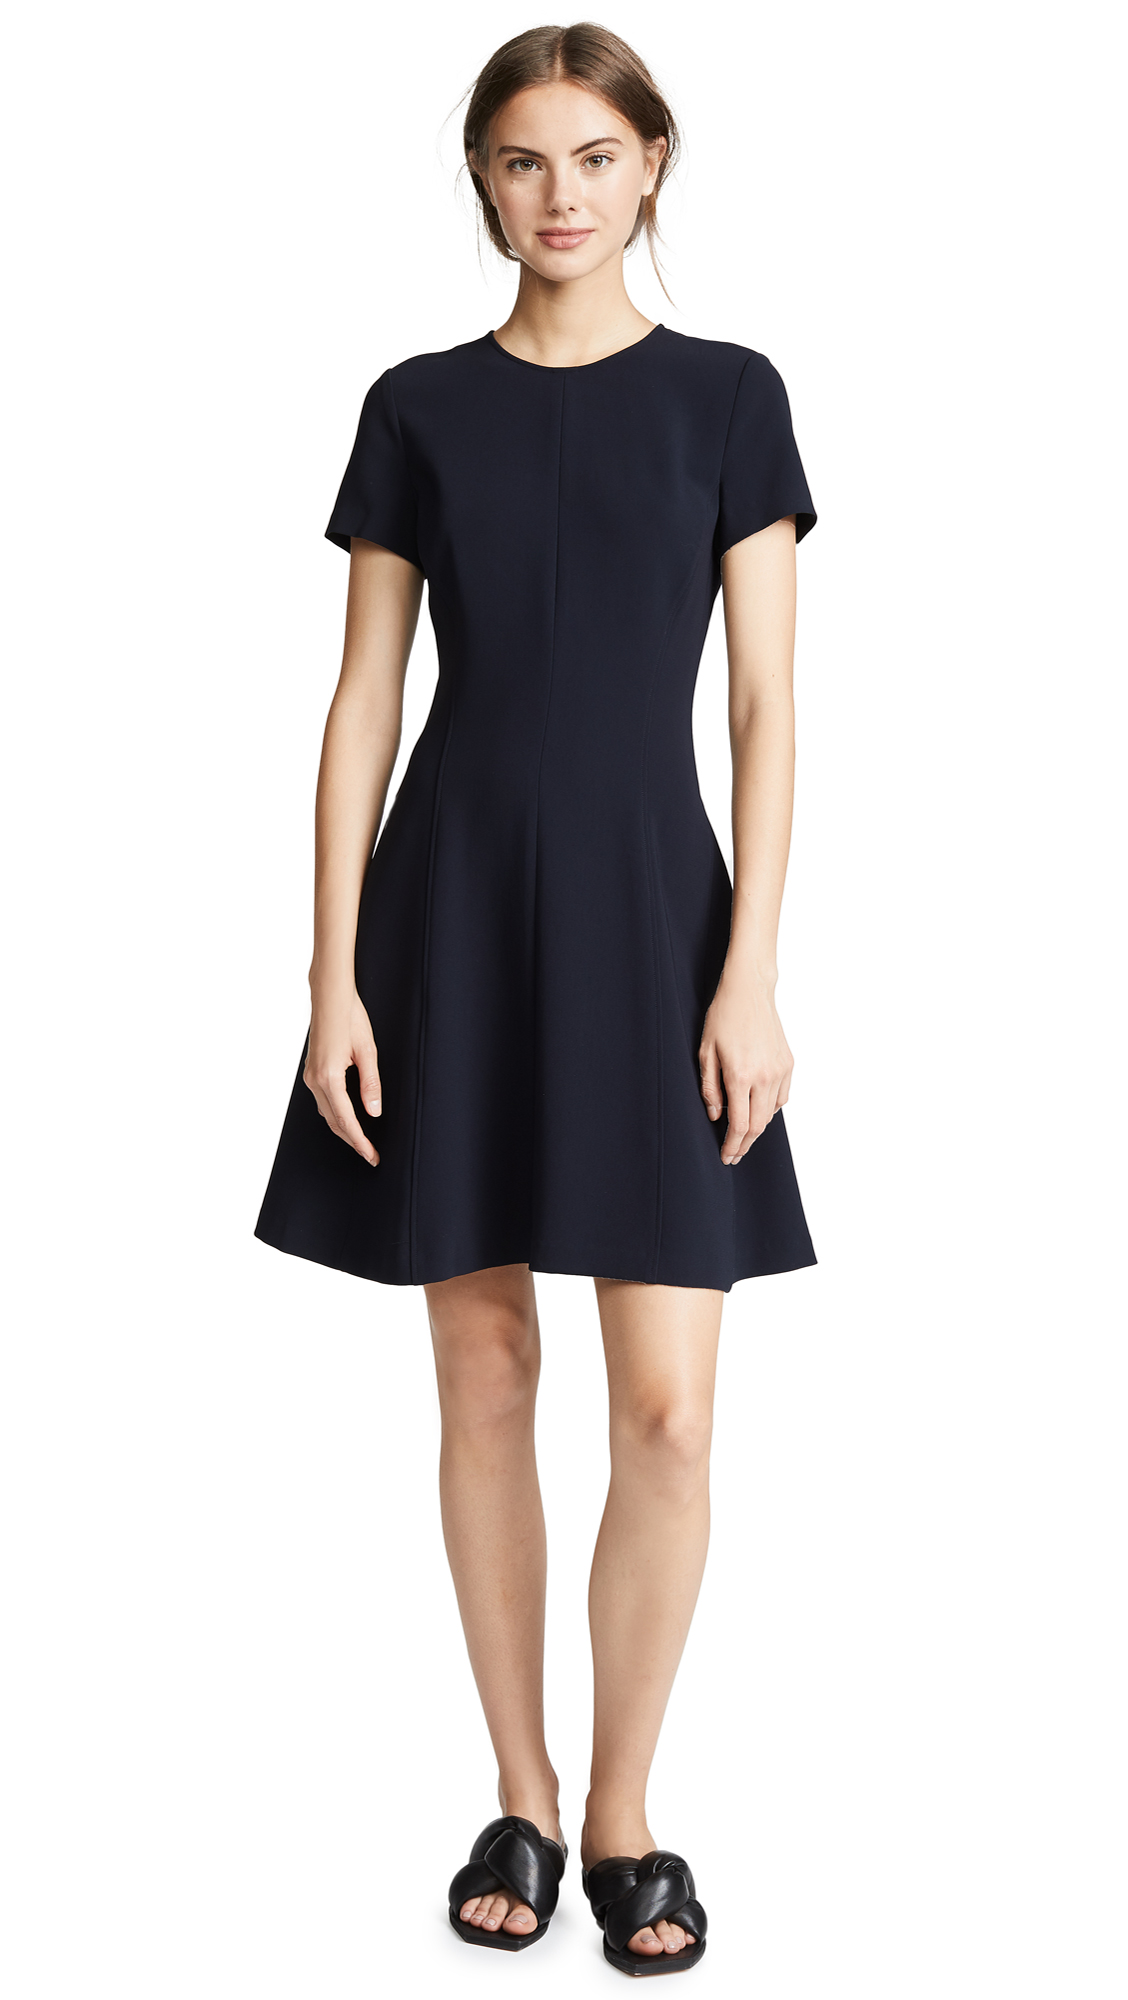 Theory Modern Seamed Shirt Dress - Deep Navy